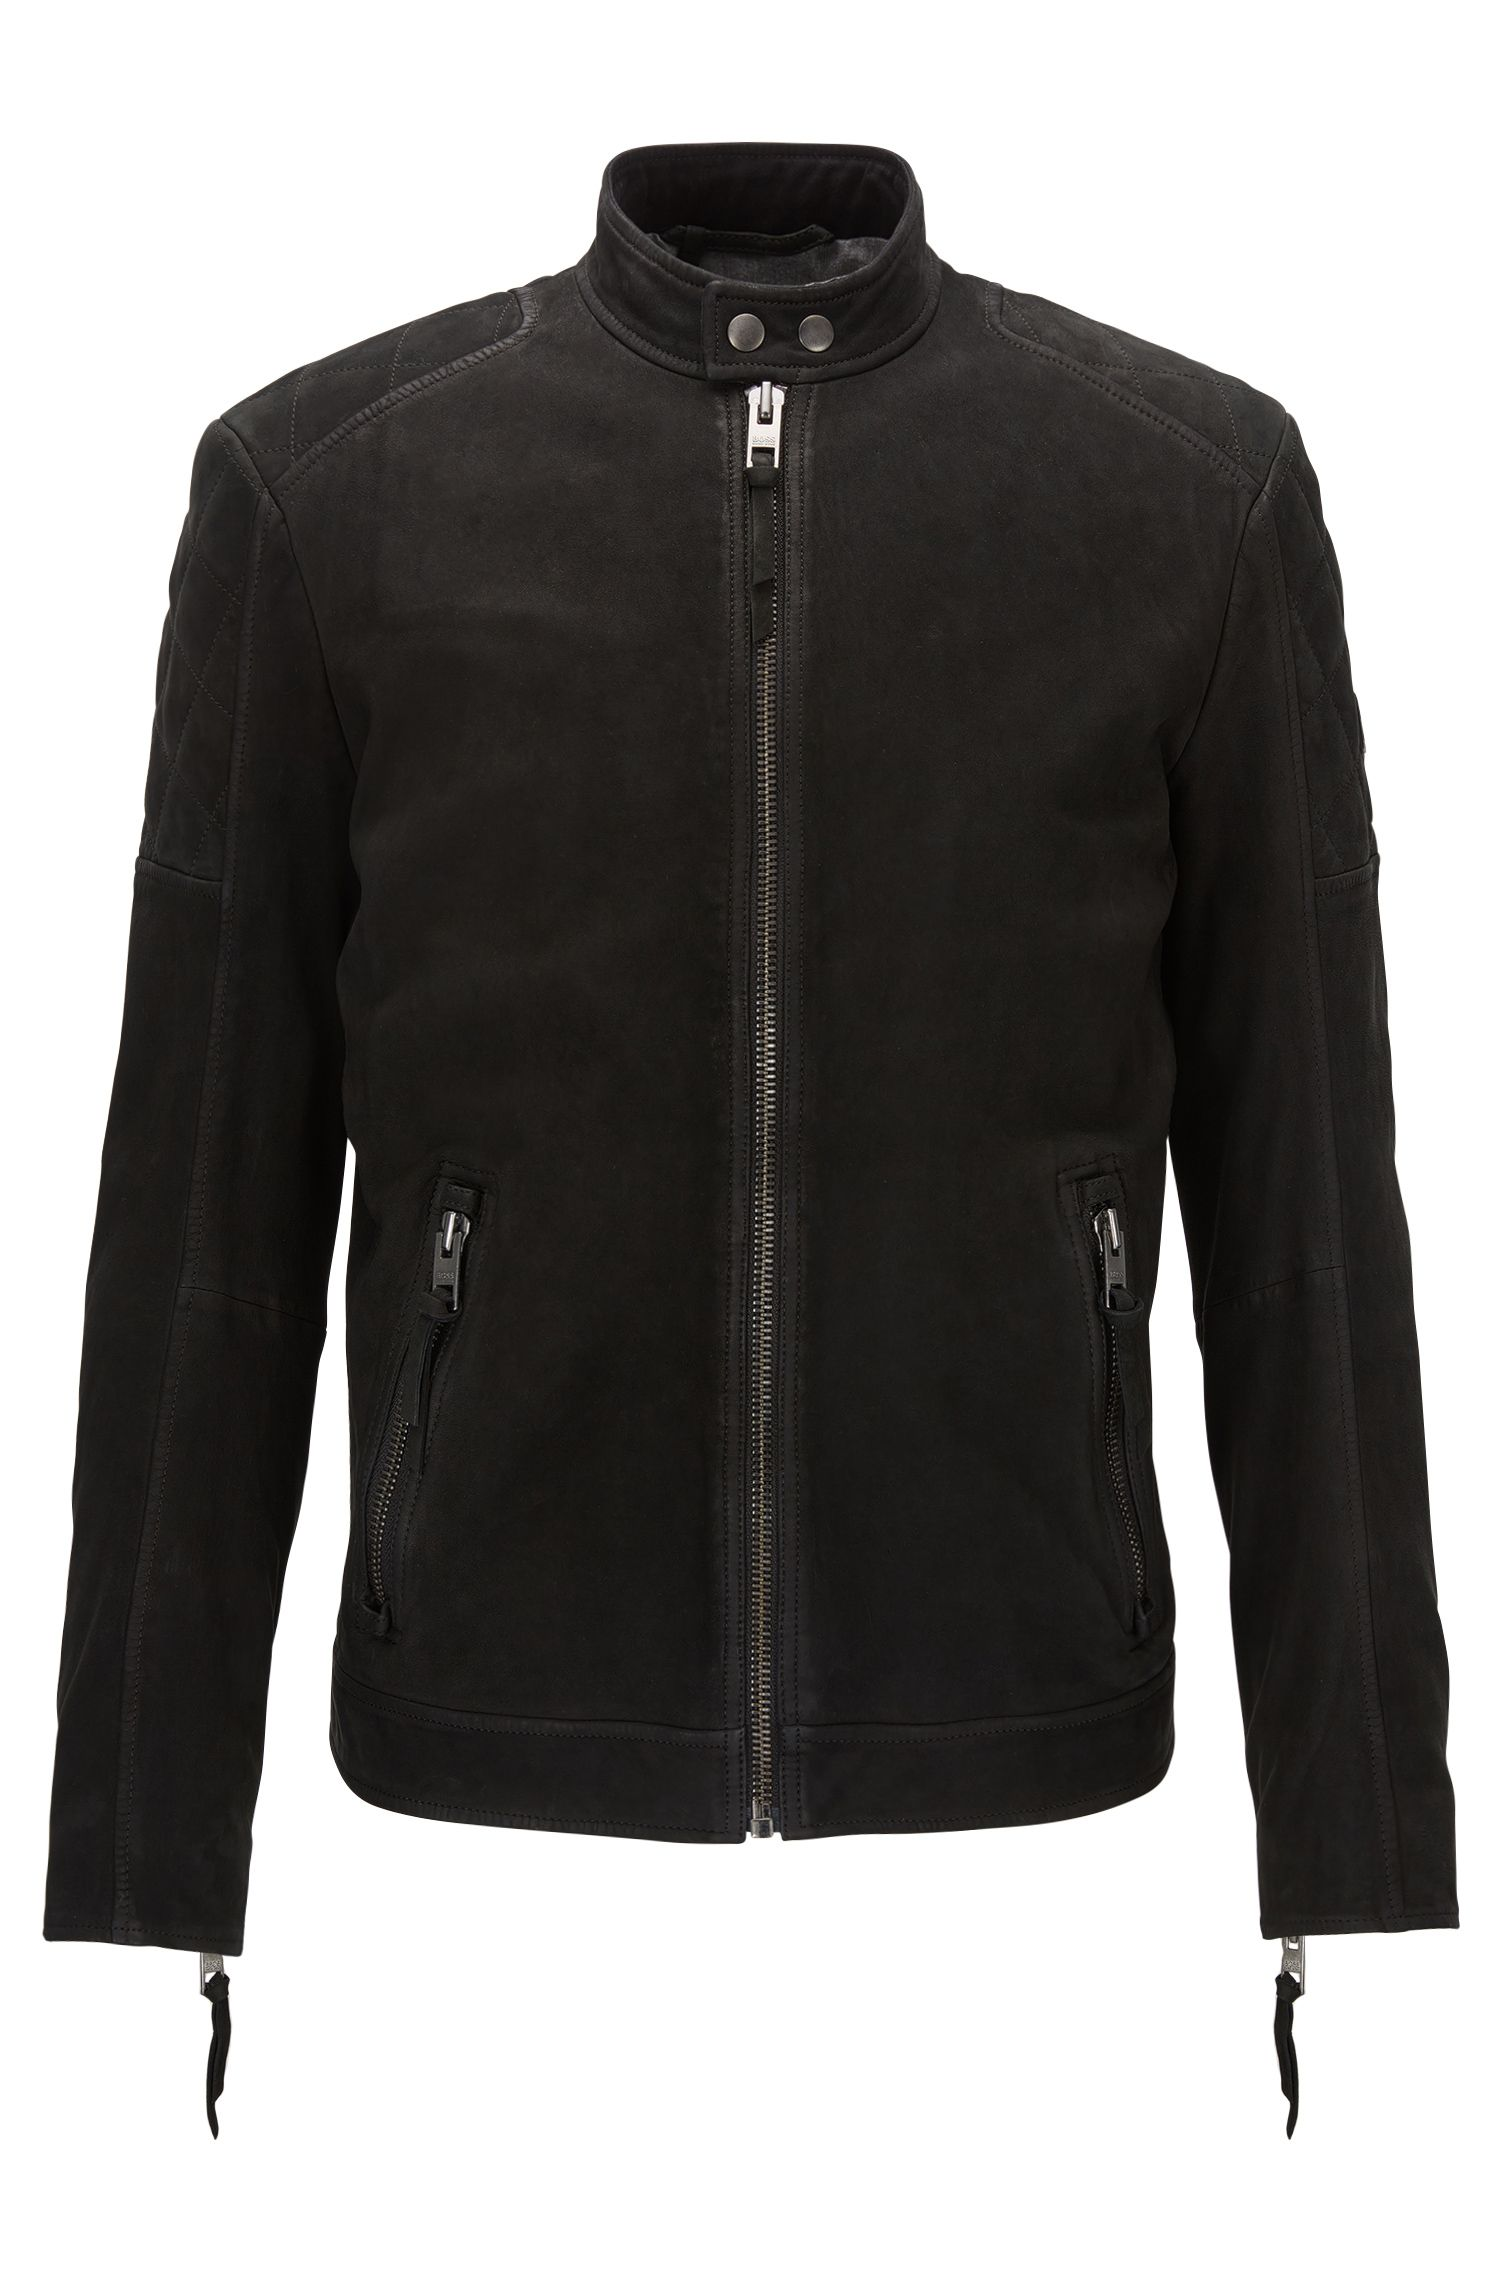 Suede Leather Jacket | Jeepo, Black